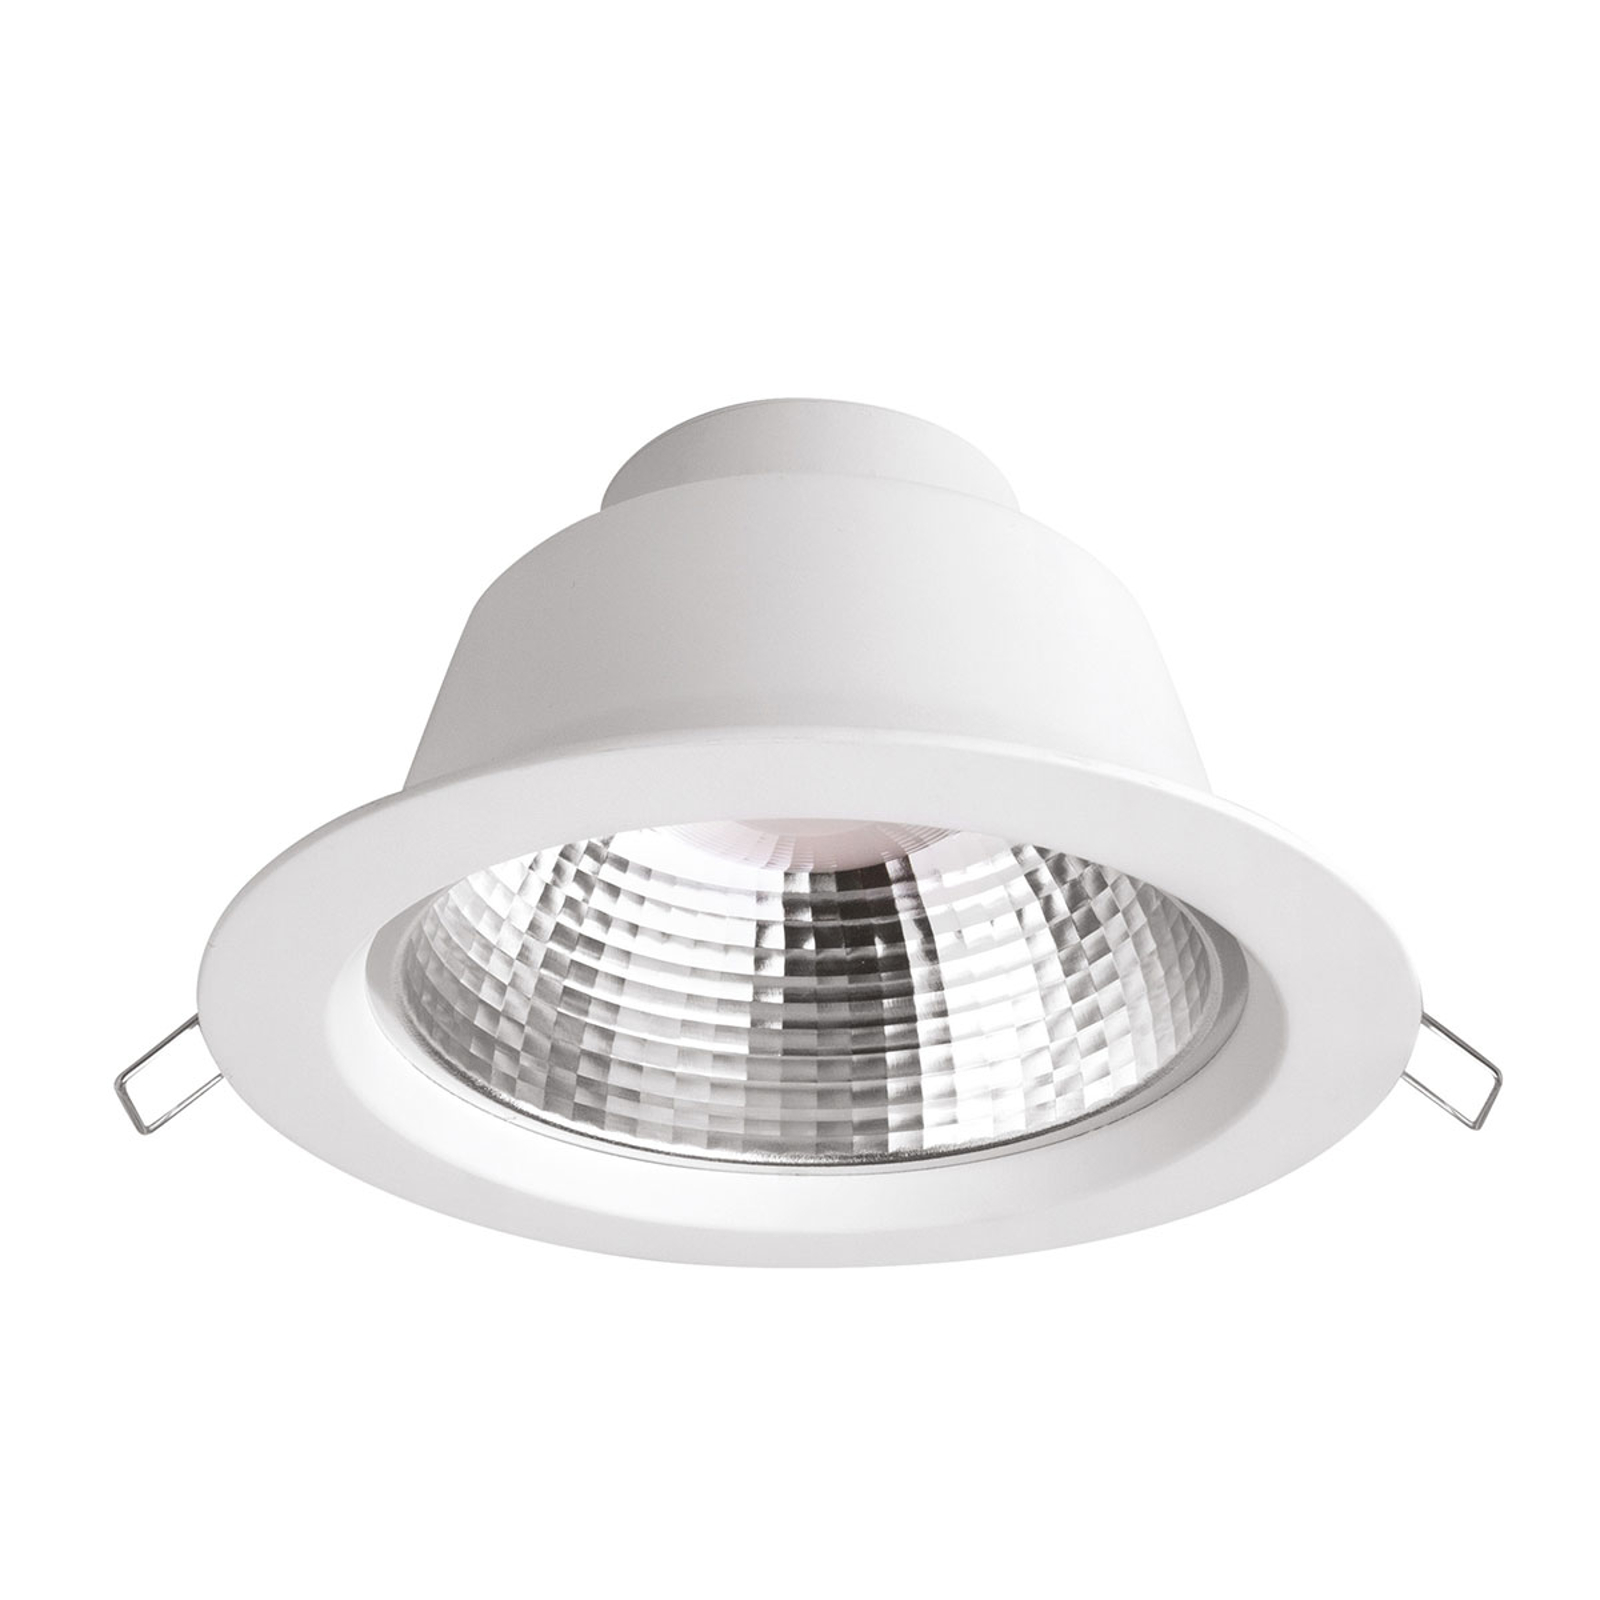 LED recessed light Siena, good colour rendering_6530268_1